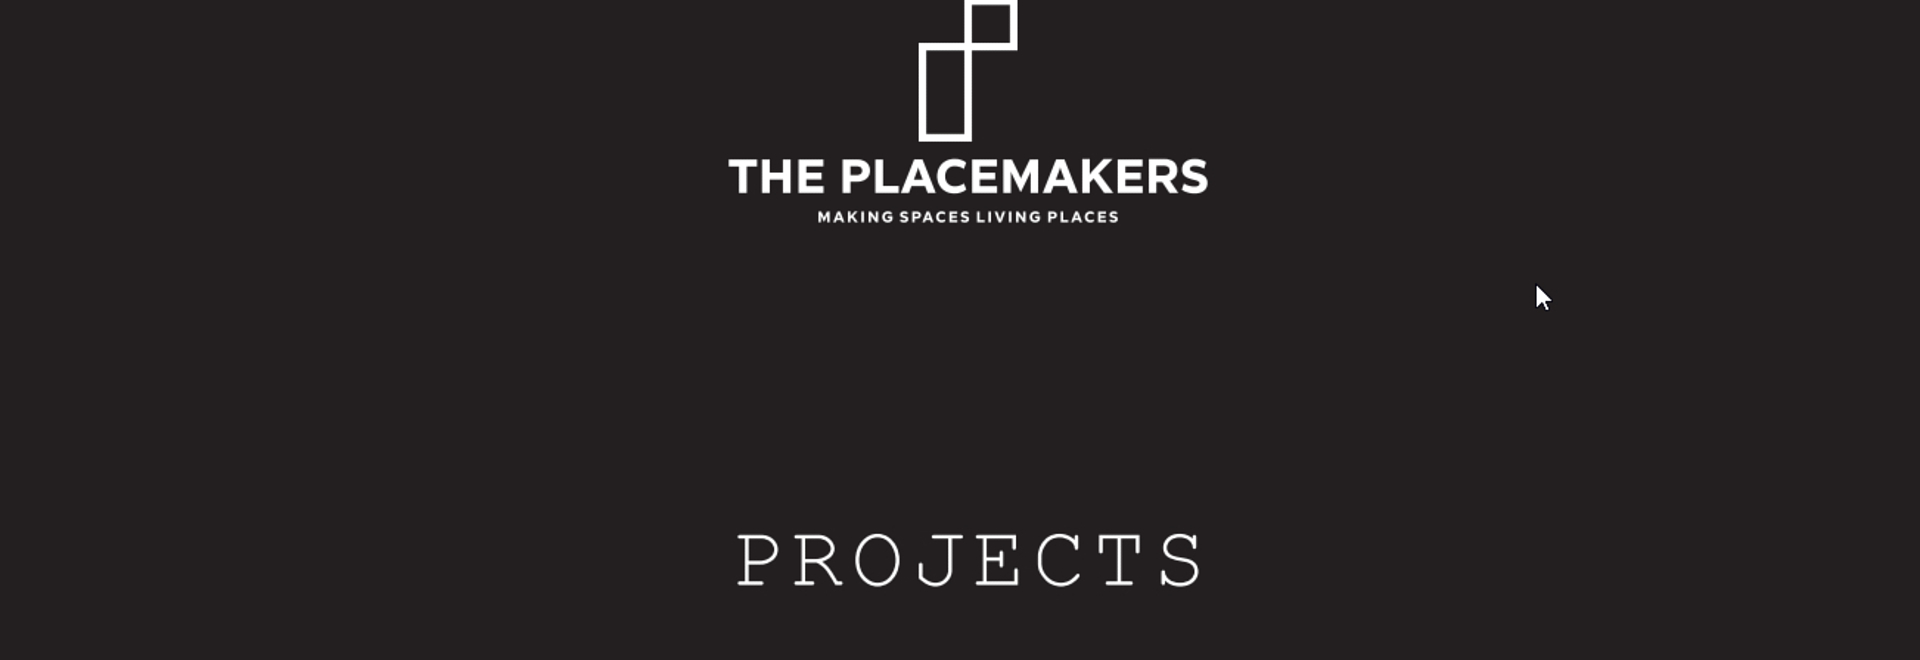 The Placemakers The largest street furniture manufacturer group